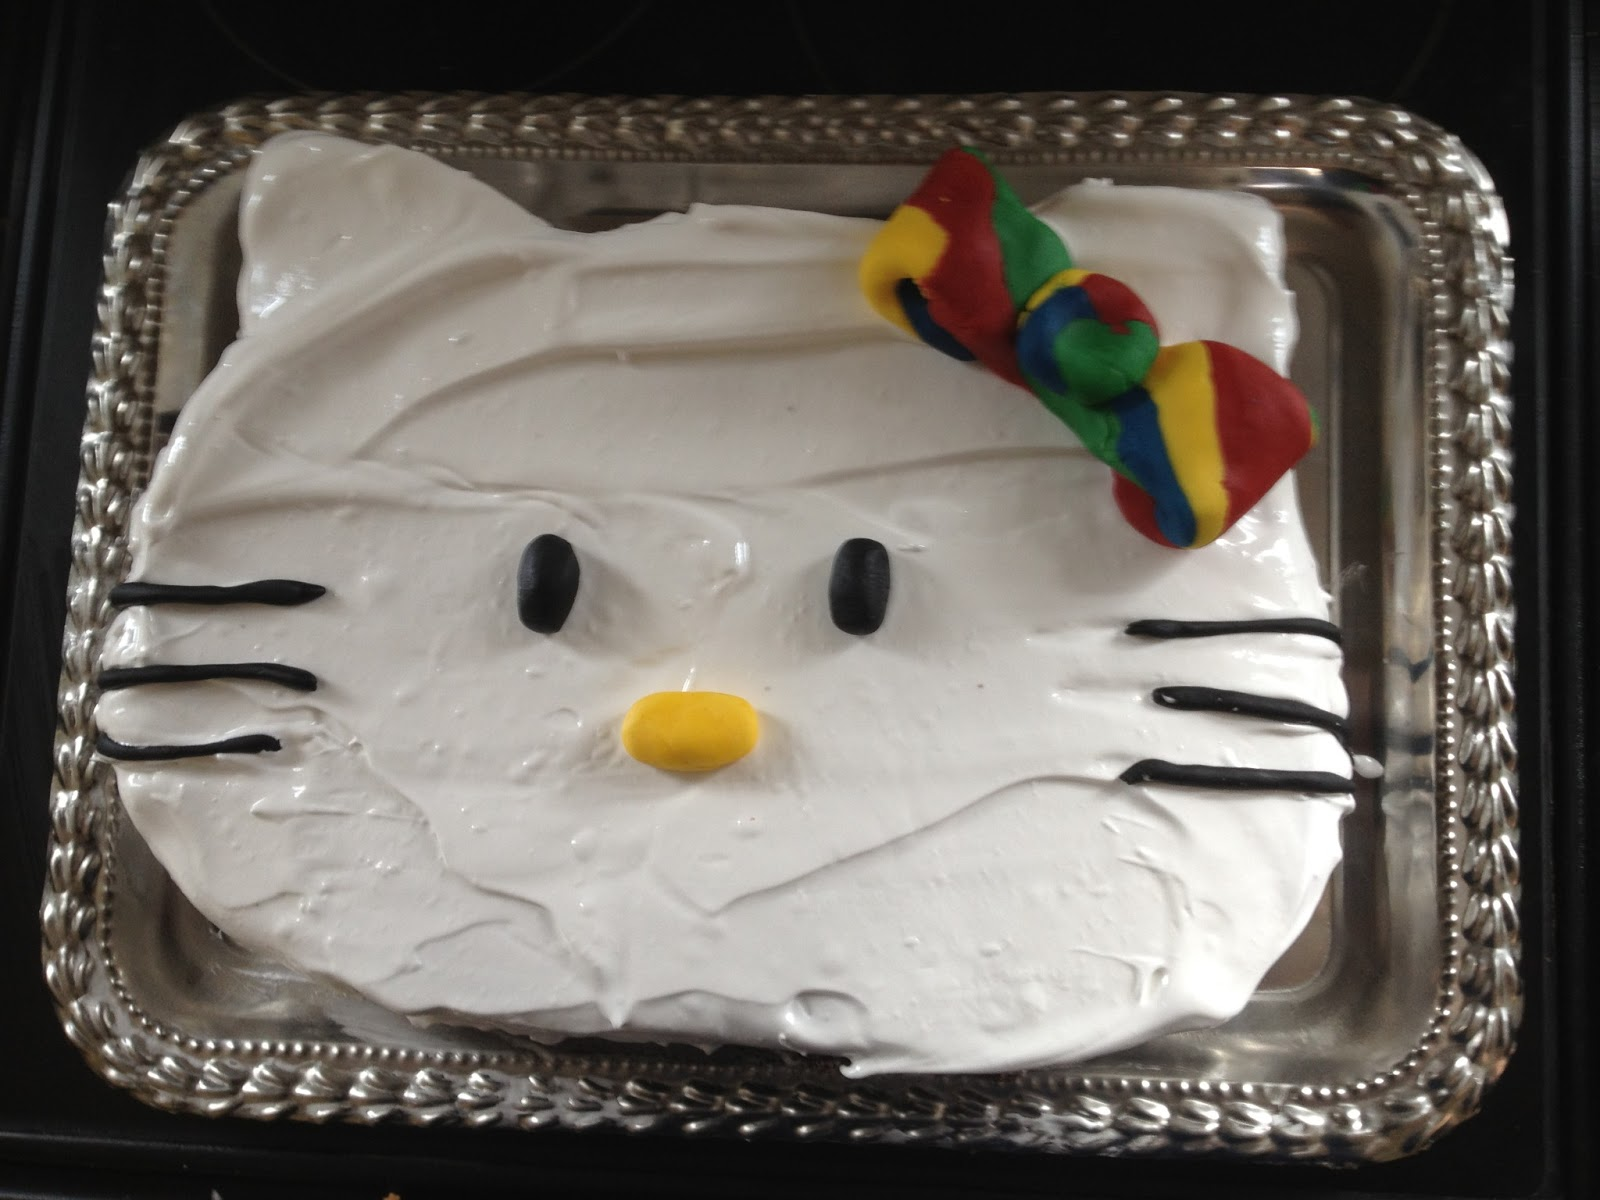 Alexandras Choice For Her Birthday Cake Was A Chocolate Hello Kitty I Adapted Recipe From The Gluten Free Cookbook Kids To Make